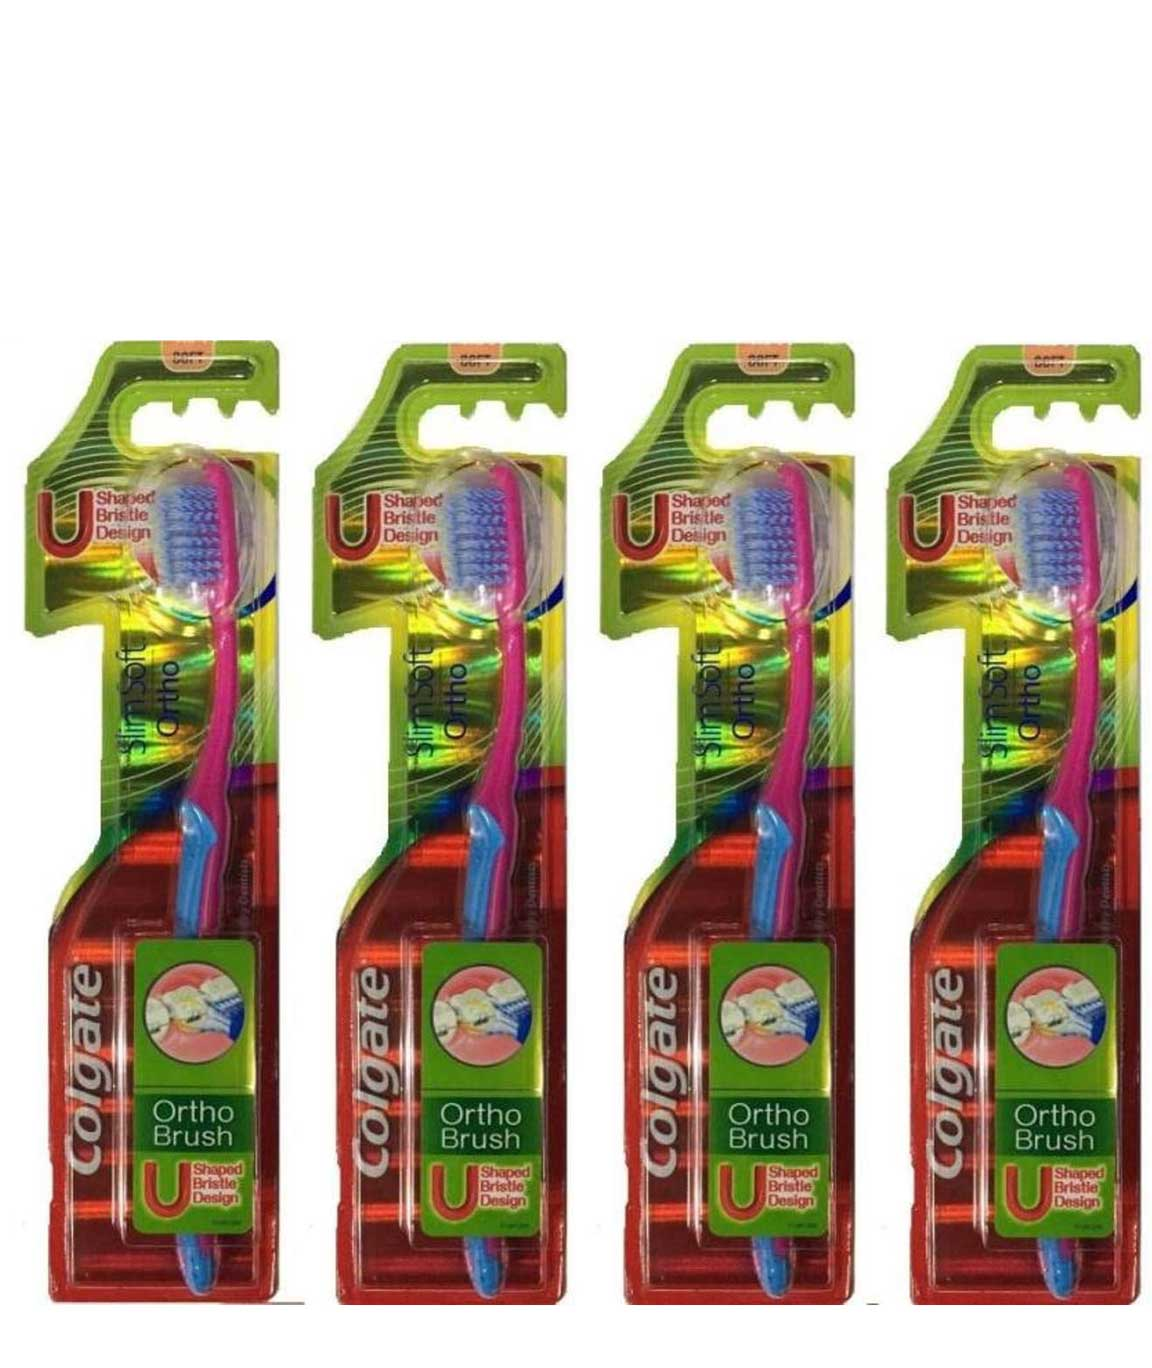 Colgate ortho Brush Slim soft Toothbrush 100% Whole Mouth Cleaner Cheek & Tongune Cleaner shaped bristle design Pack Of 4pc